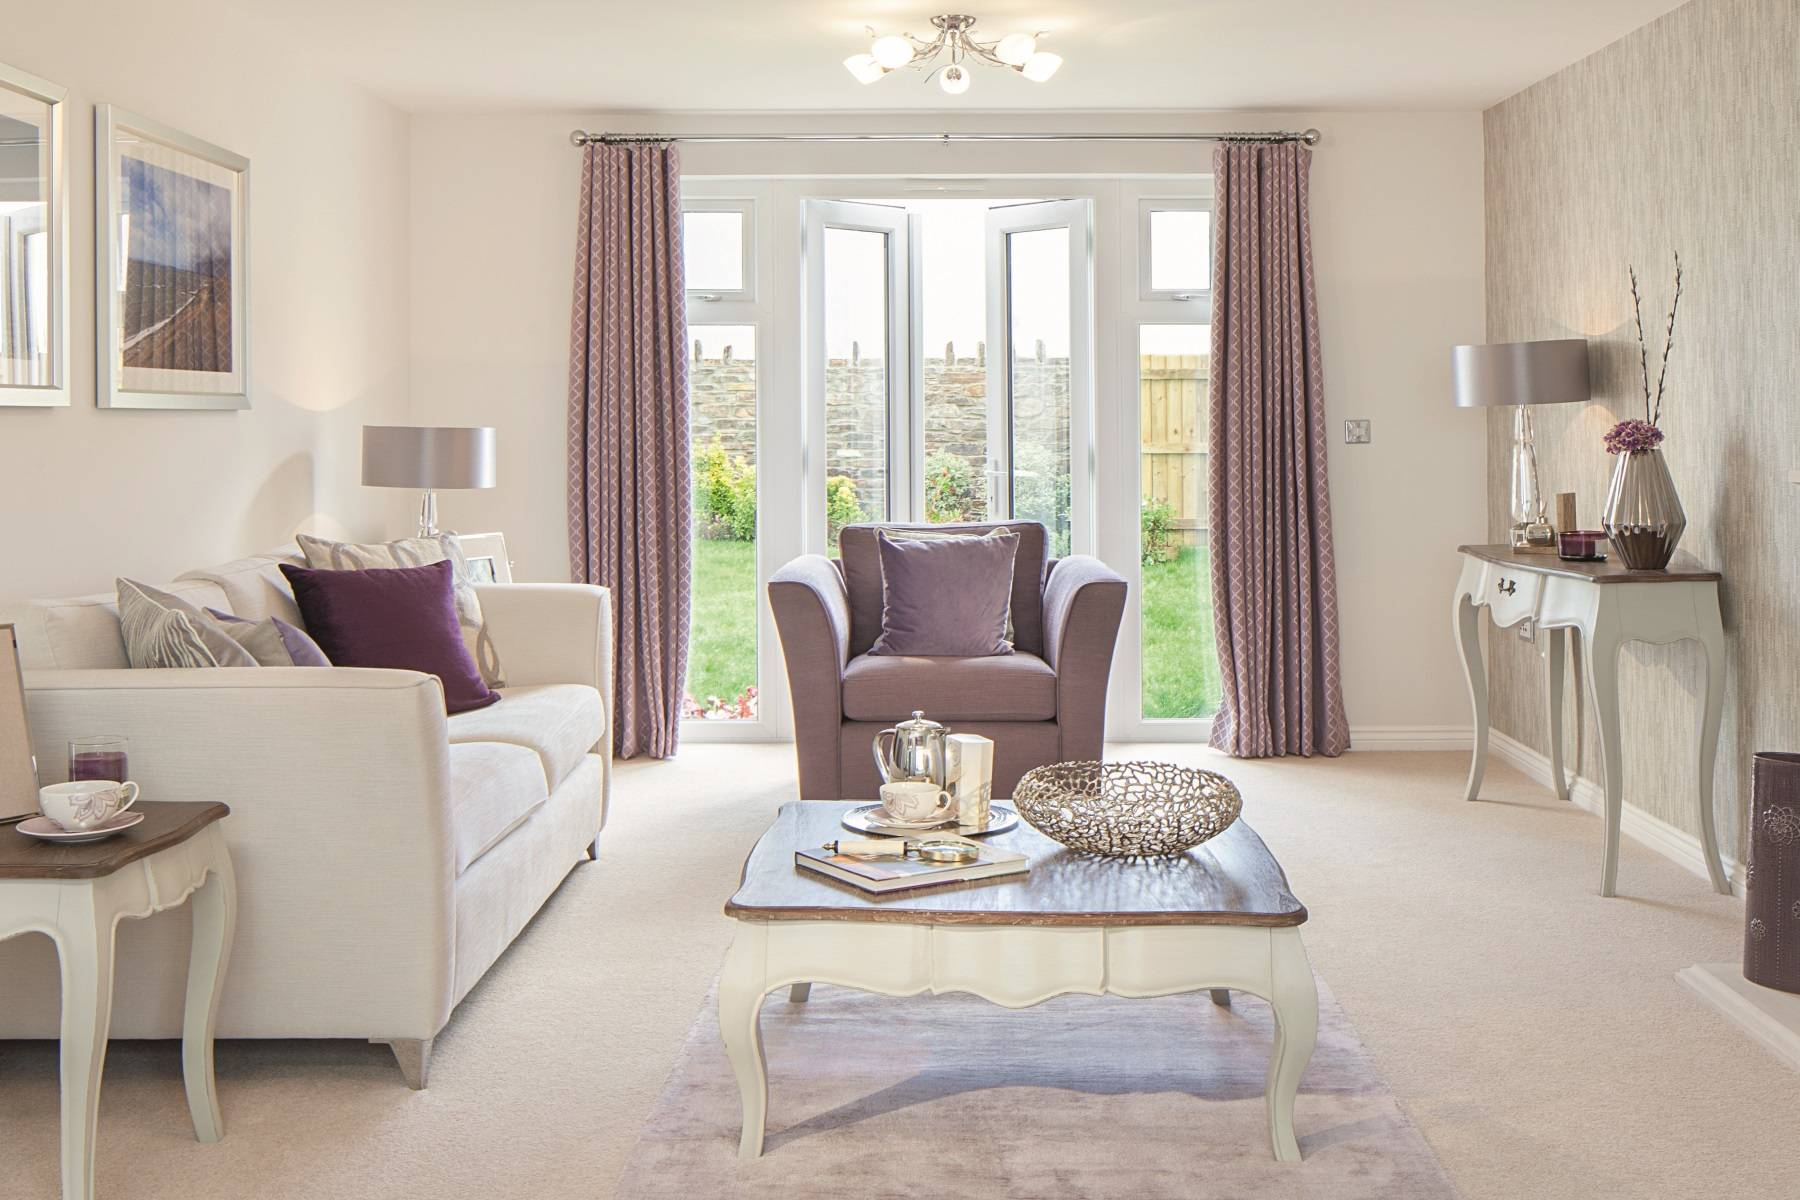 TW Exeter - Copleston Heights - Bawden example living room